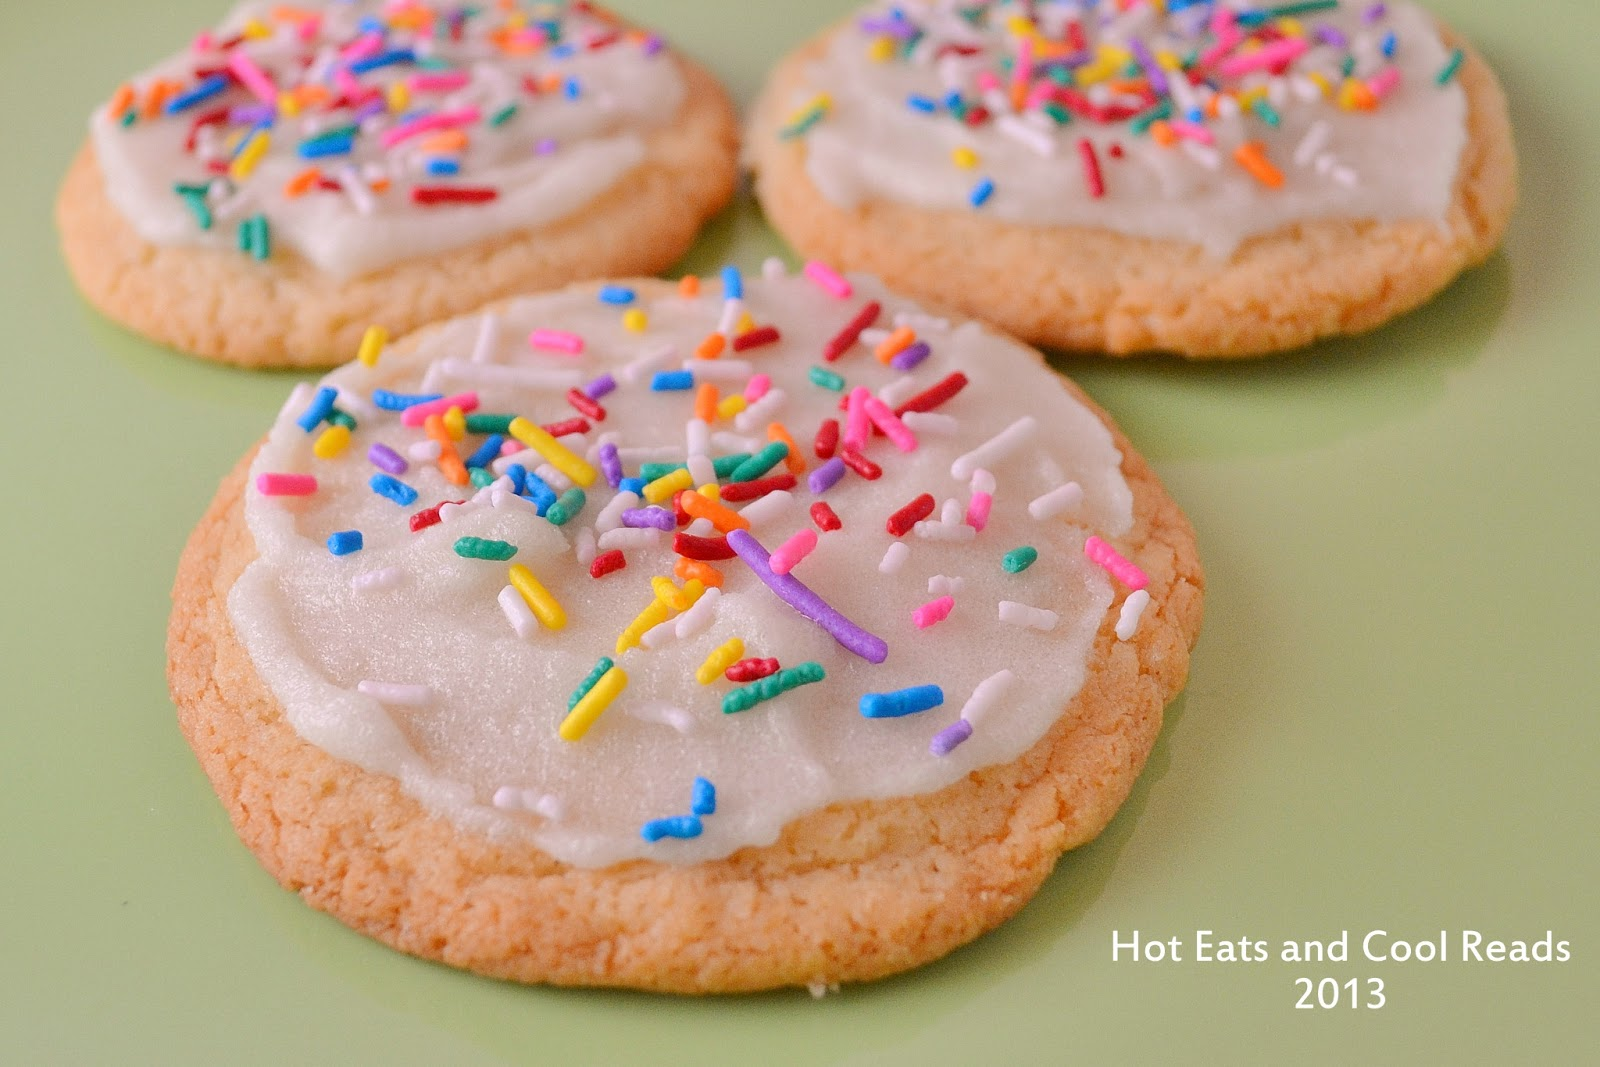 Hot Eats and Cool Reads: The Best Frosted Sugar Cookies Recipe